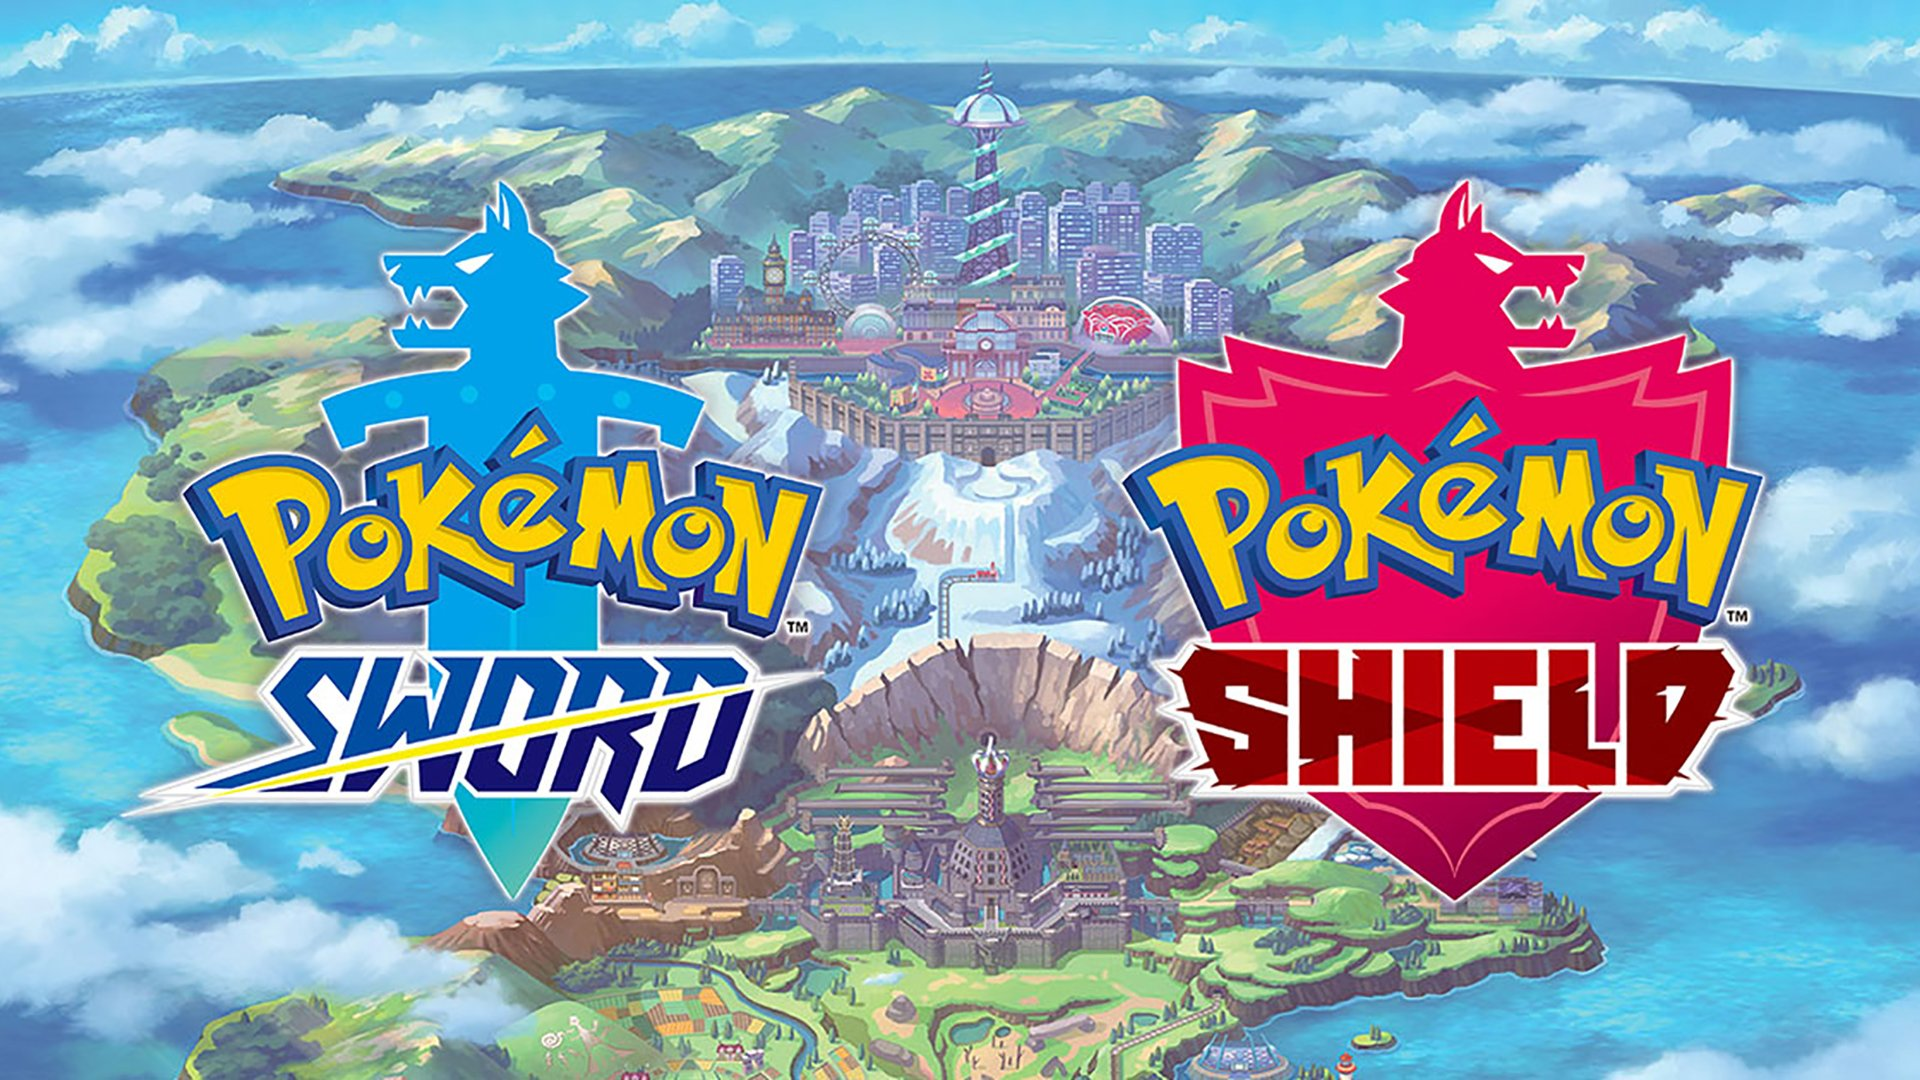 Nintendo and GameFreak Announce Pokemon Sword and Shield